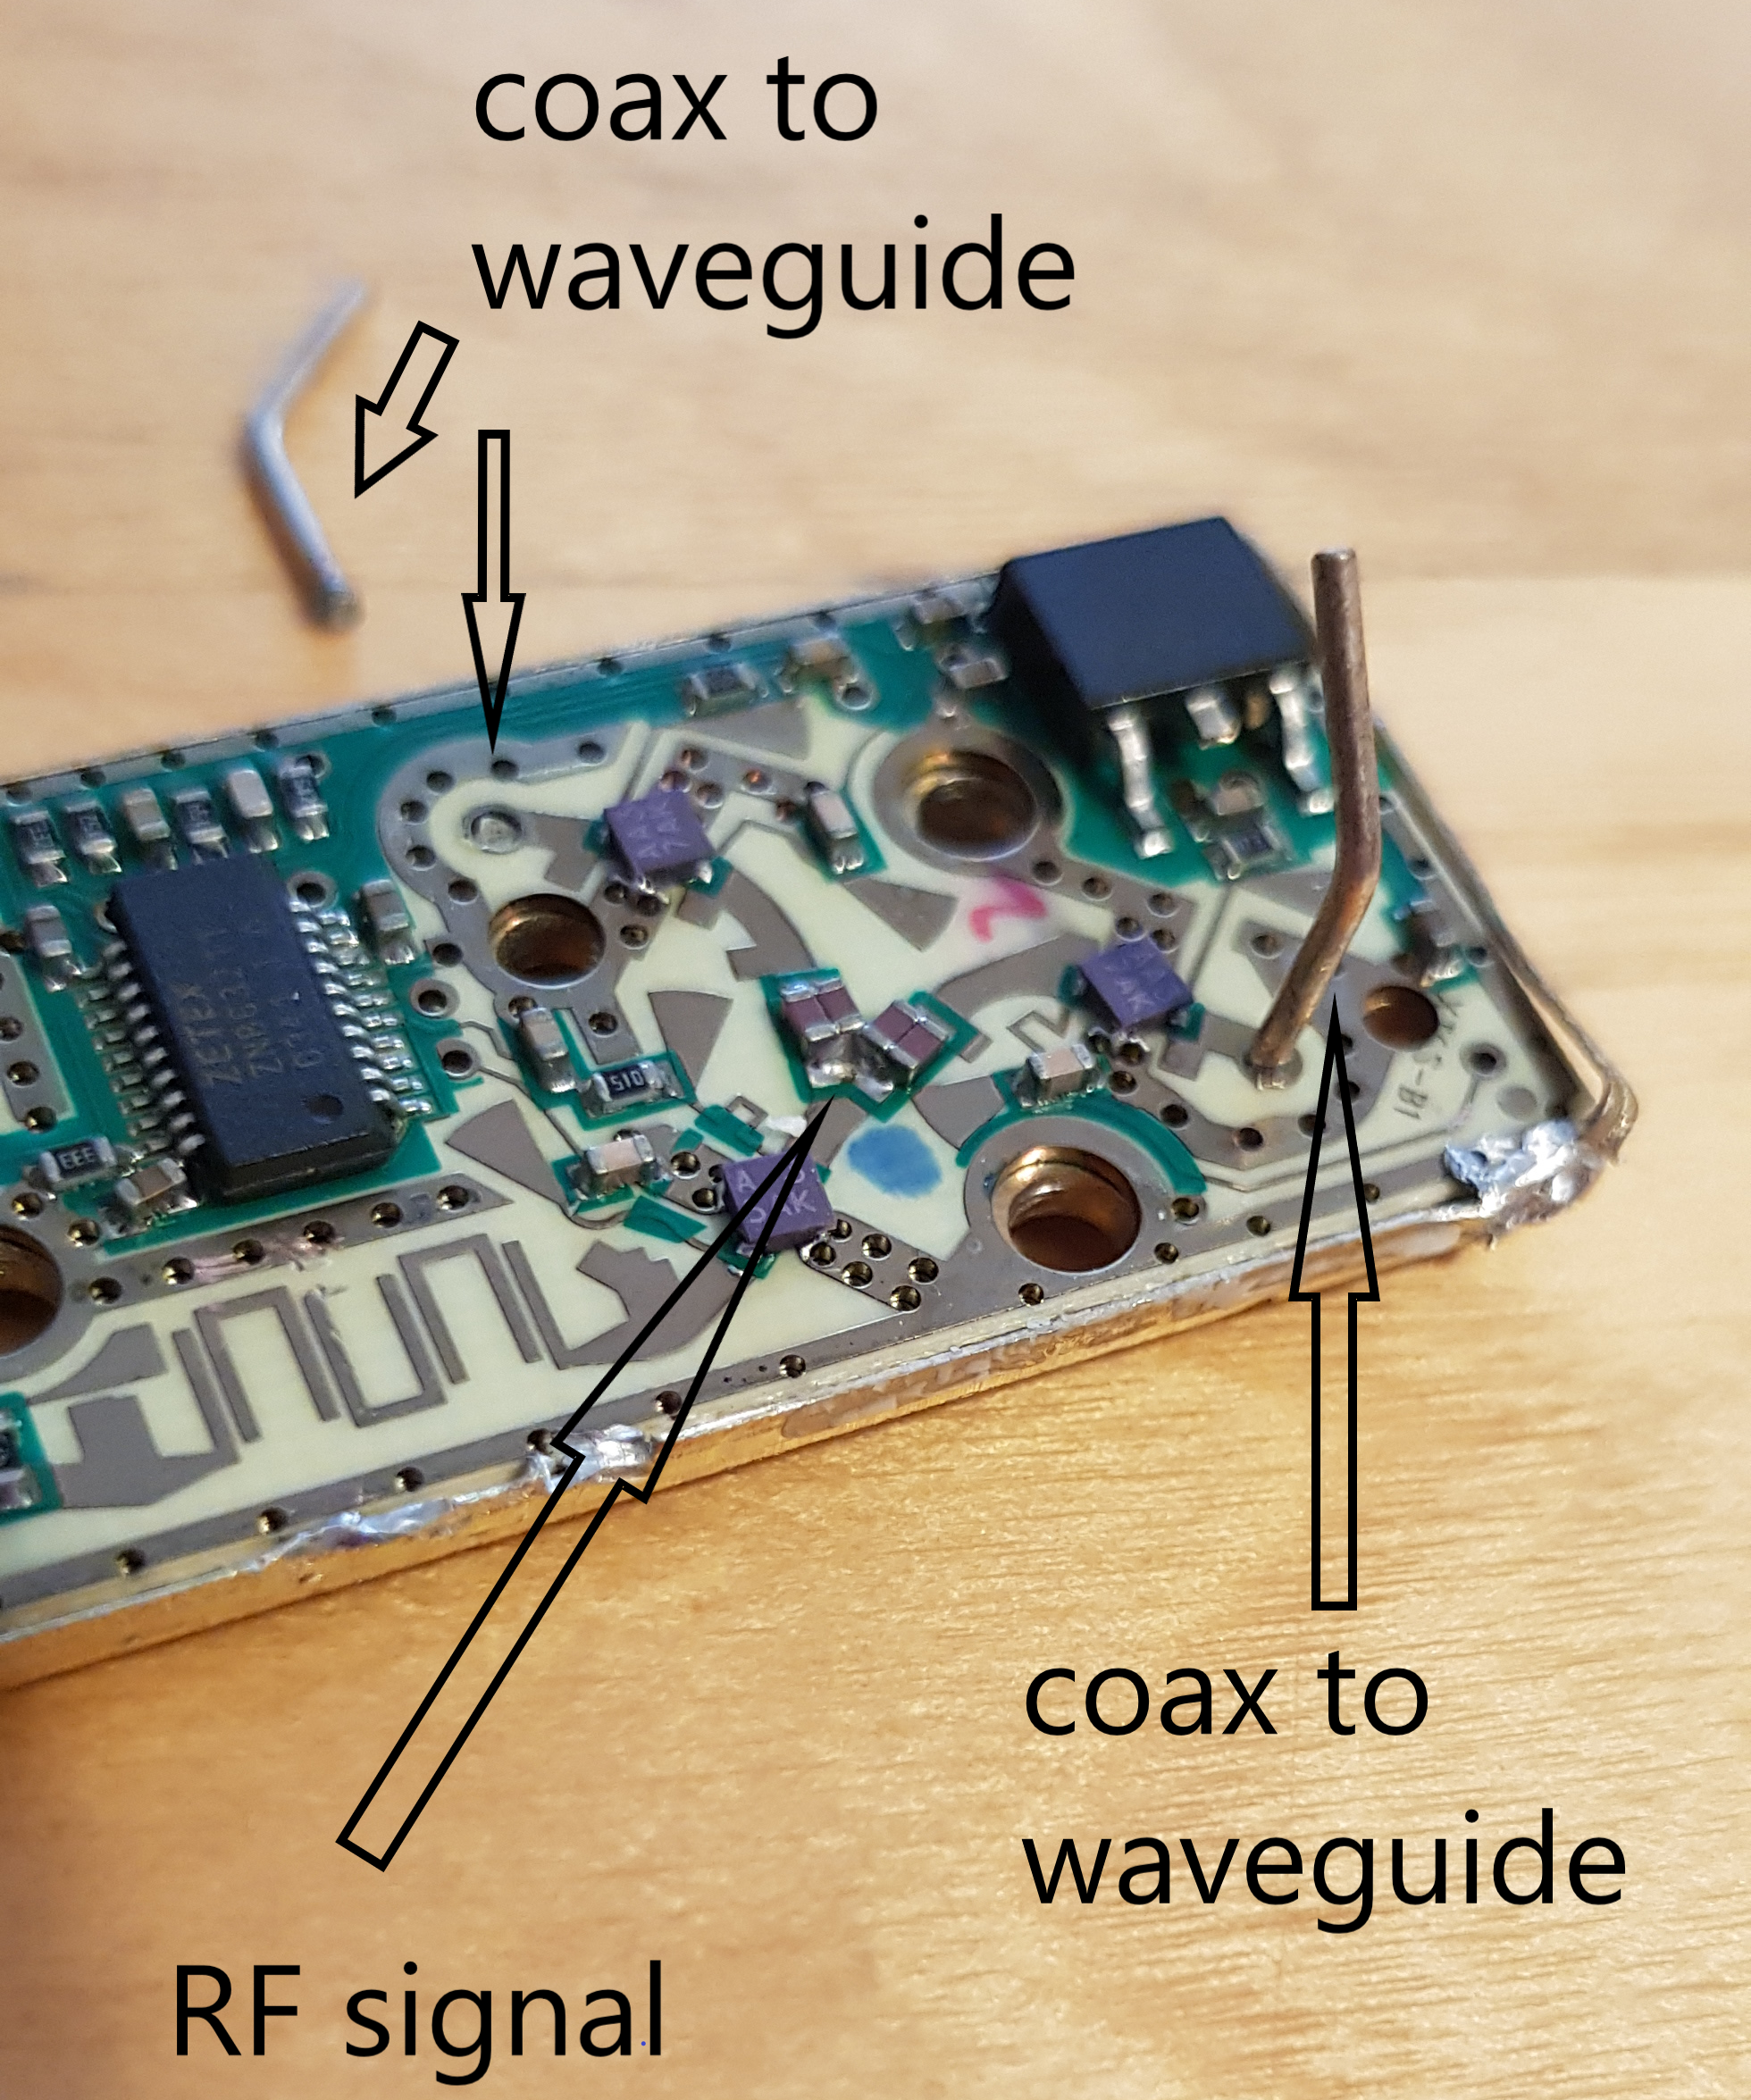 coax to waveguide.png